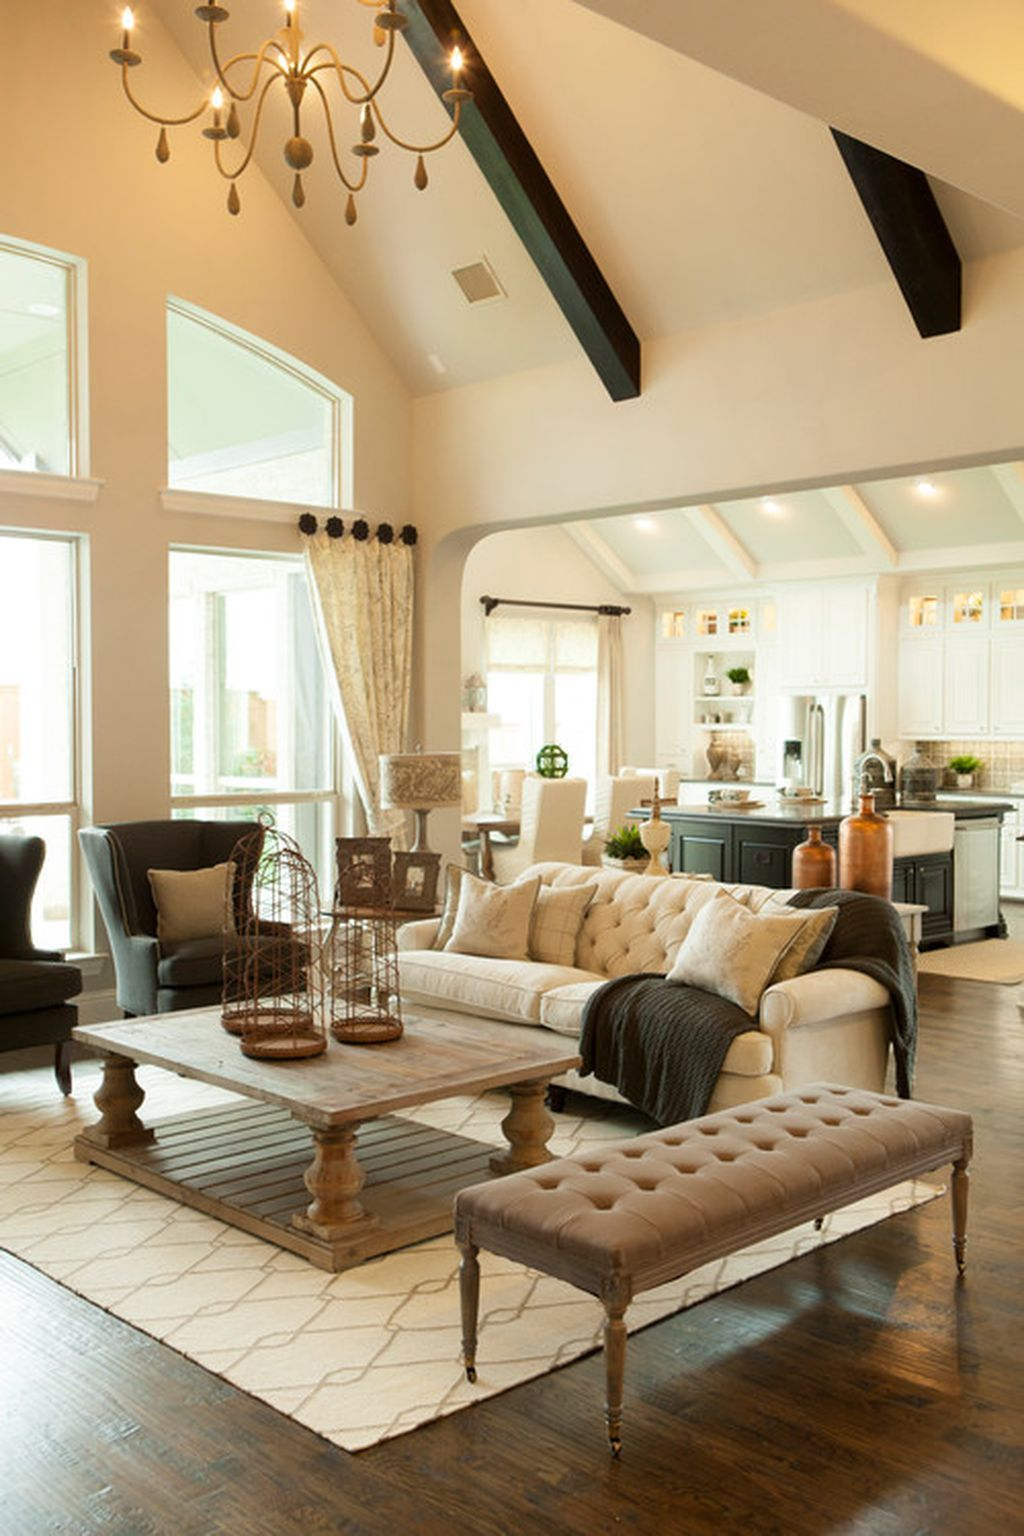 62 Adorable Traditional Living Room Designs Ideas  Traditional Amusing Interior Design Ideas Living Room Traditional Design Ideas